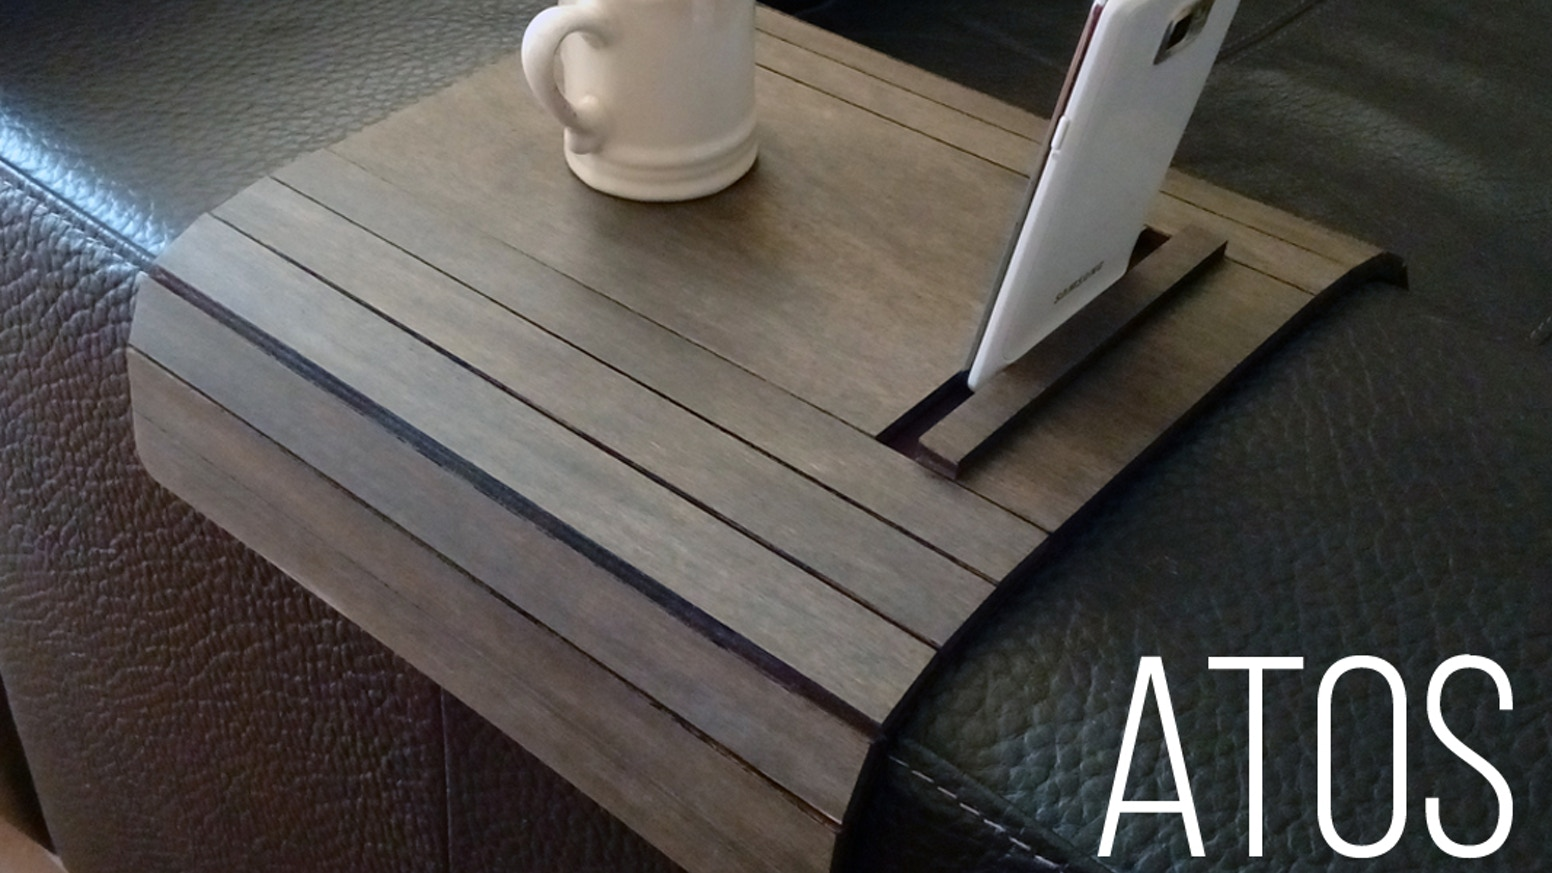 Atos Sofa Arm Rest Table With Cell Phone And Tablet Stand By